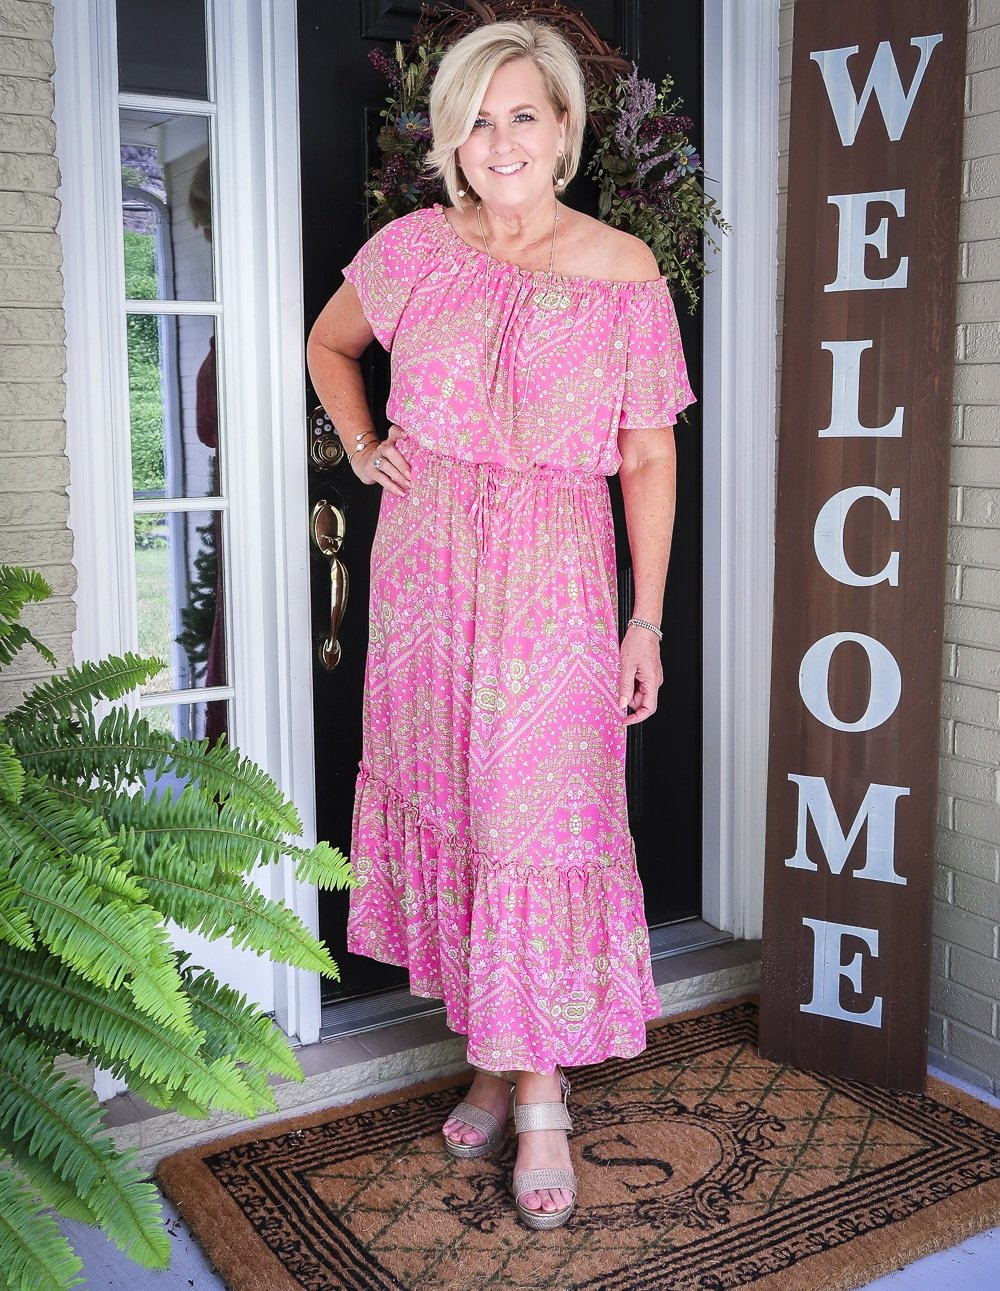 Fashion Blogger 50 Is Not Old is wearing an off the shoulder pink dress with gold jewelry and gold wedge espadrilles